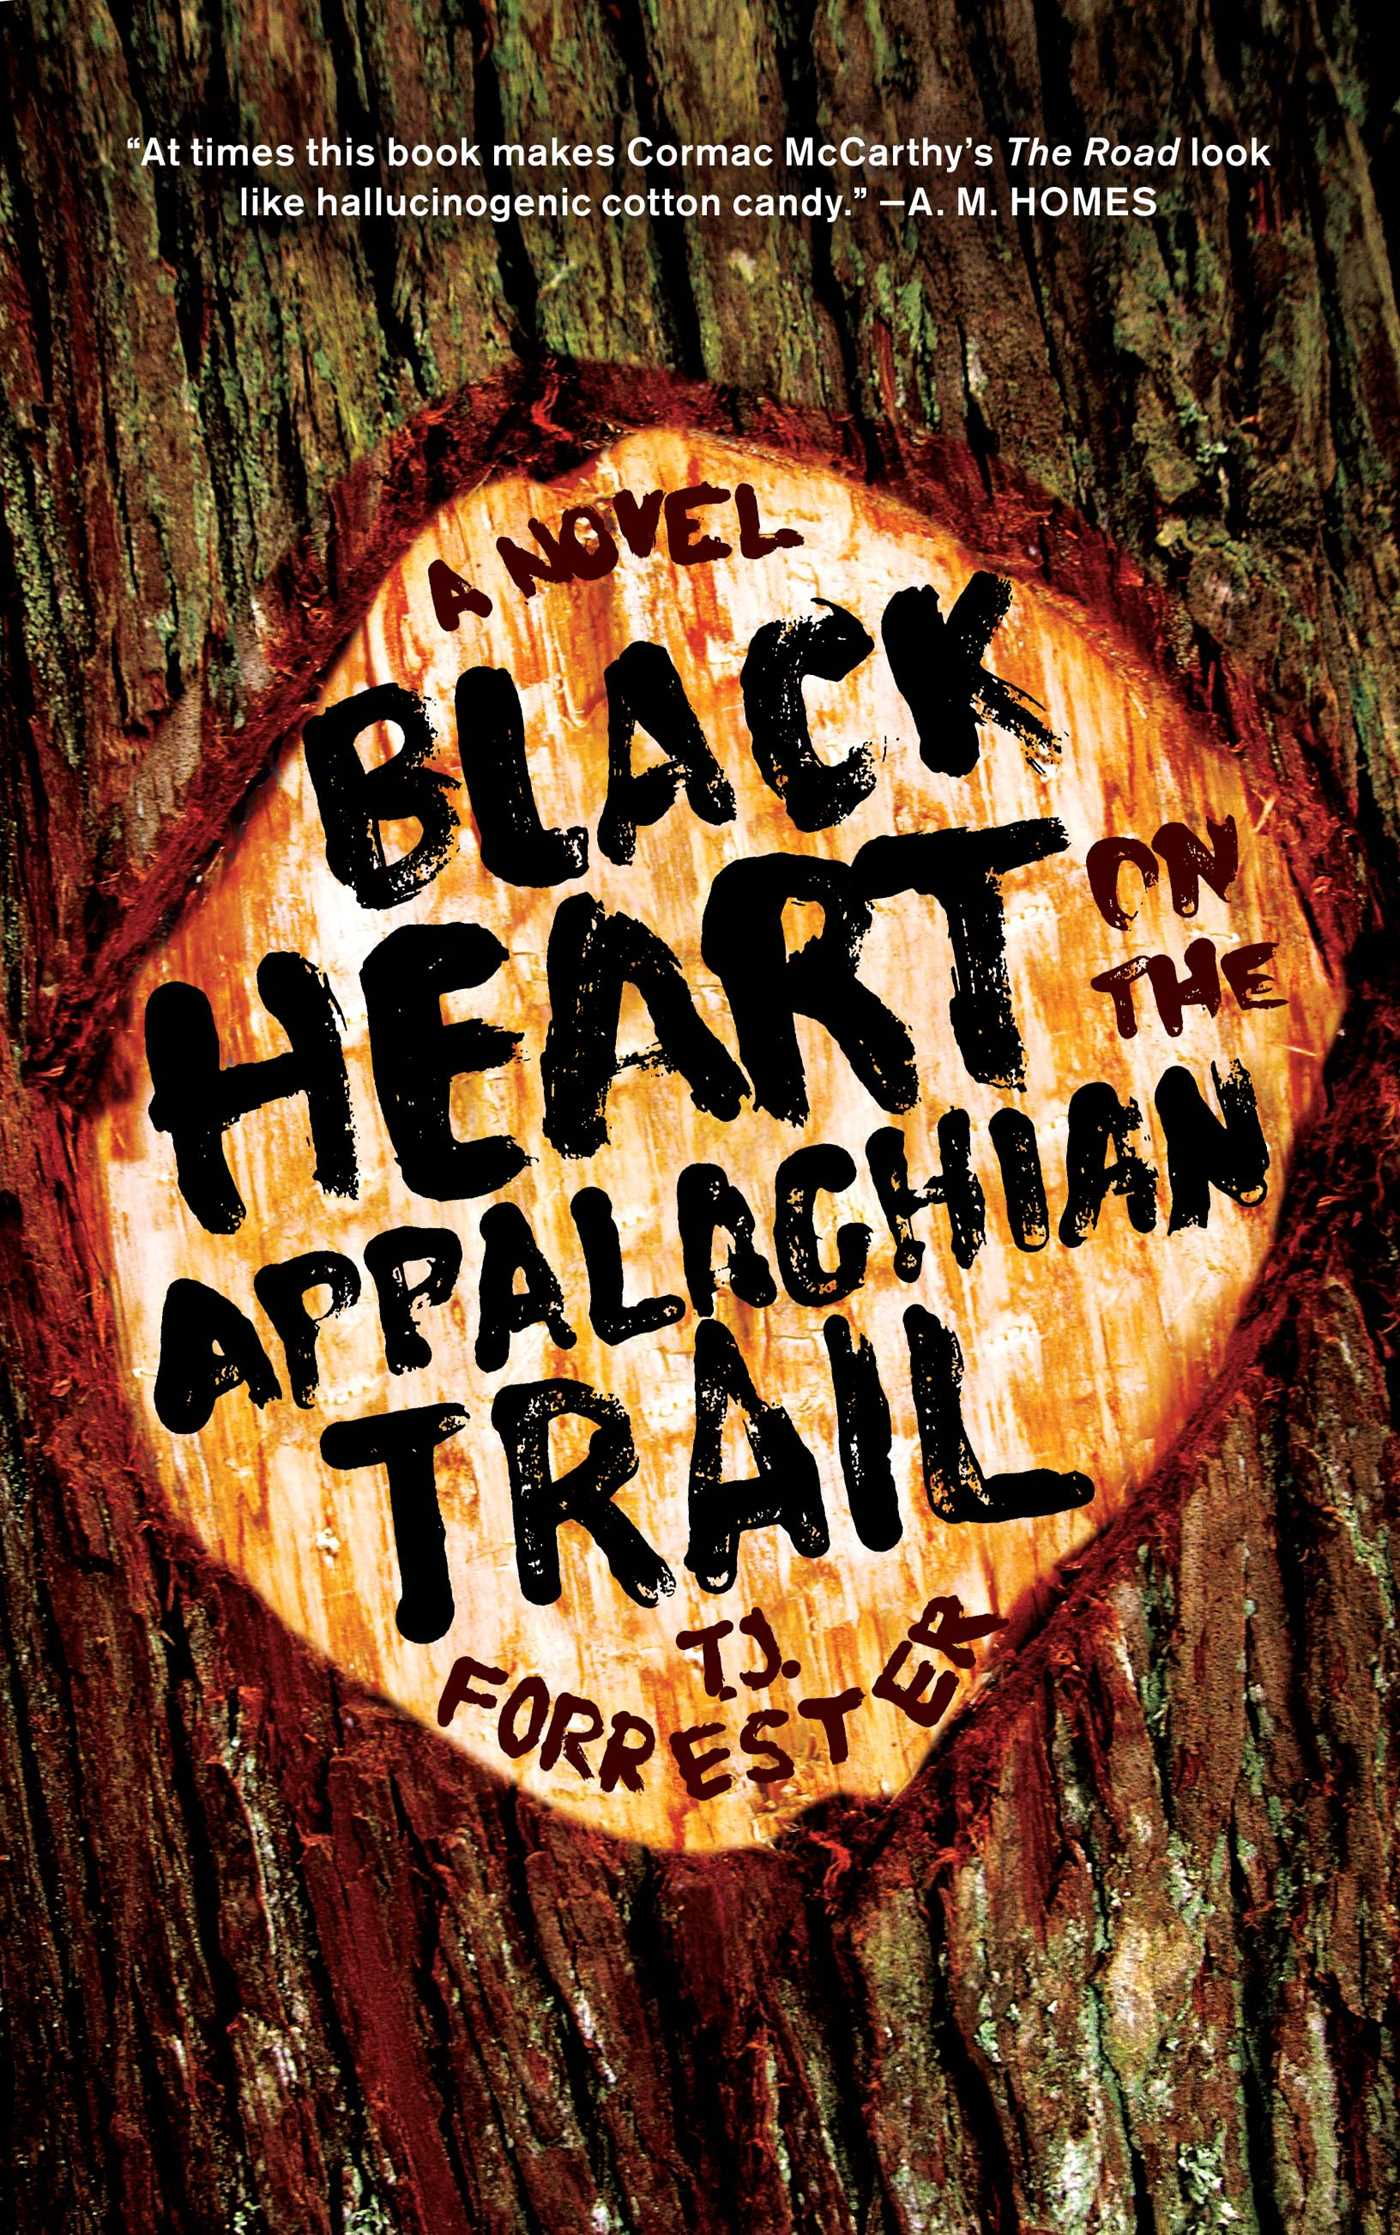 Black-heart-on-the-appalachian-trail-9781439175613_hr